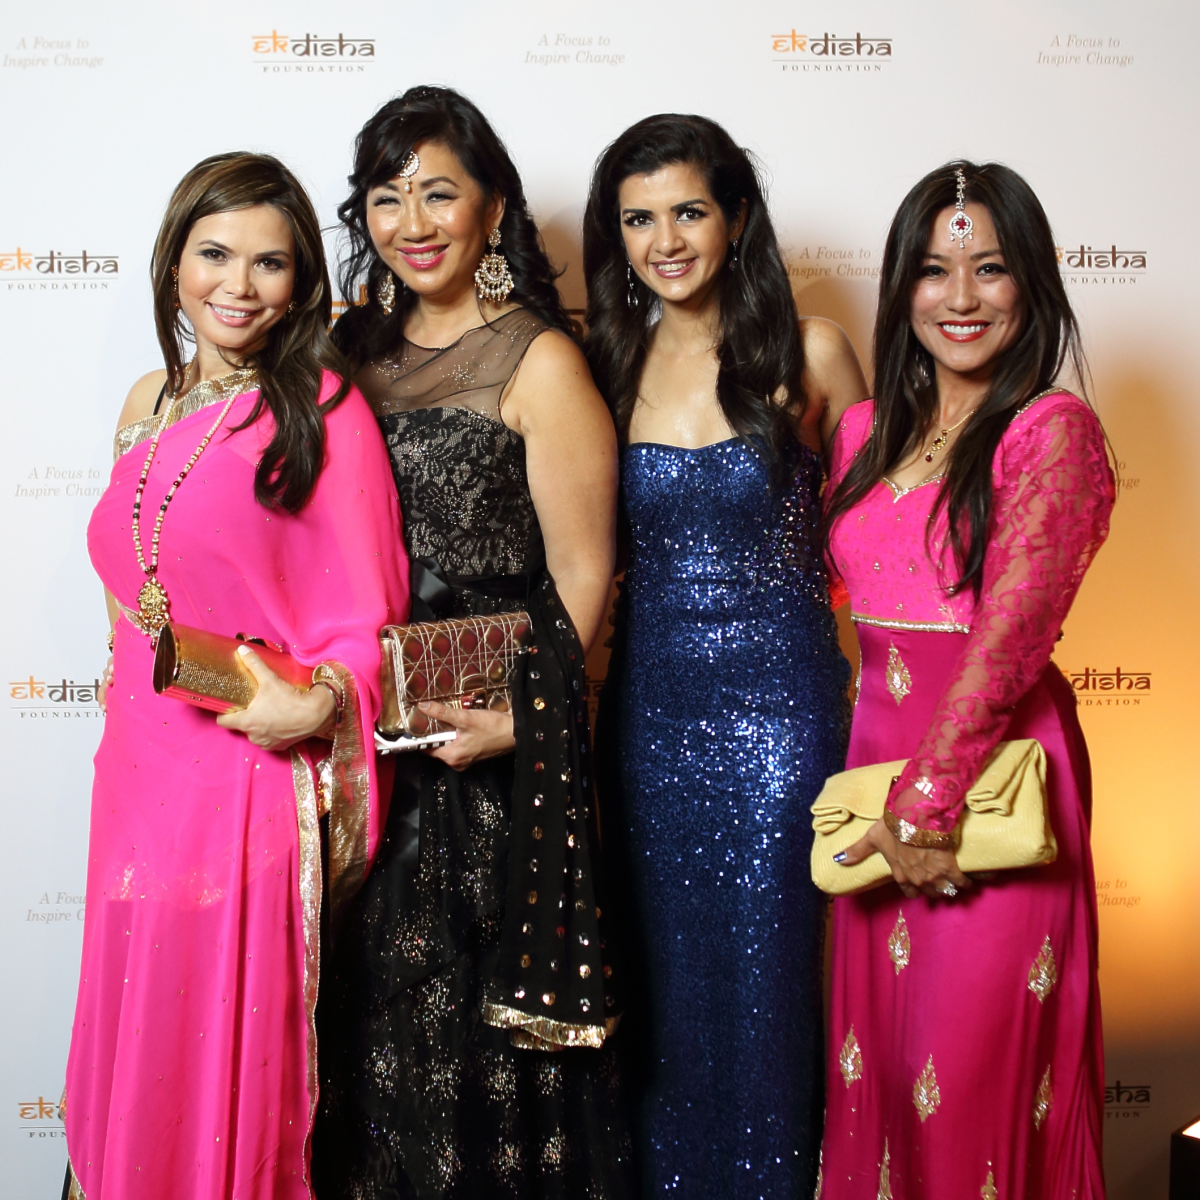 Bass Gala 2015 Amy Dichoso, Alice Mao, Brams, Naureen Malik, Gina Li